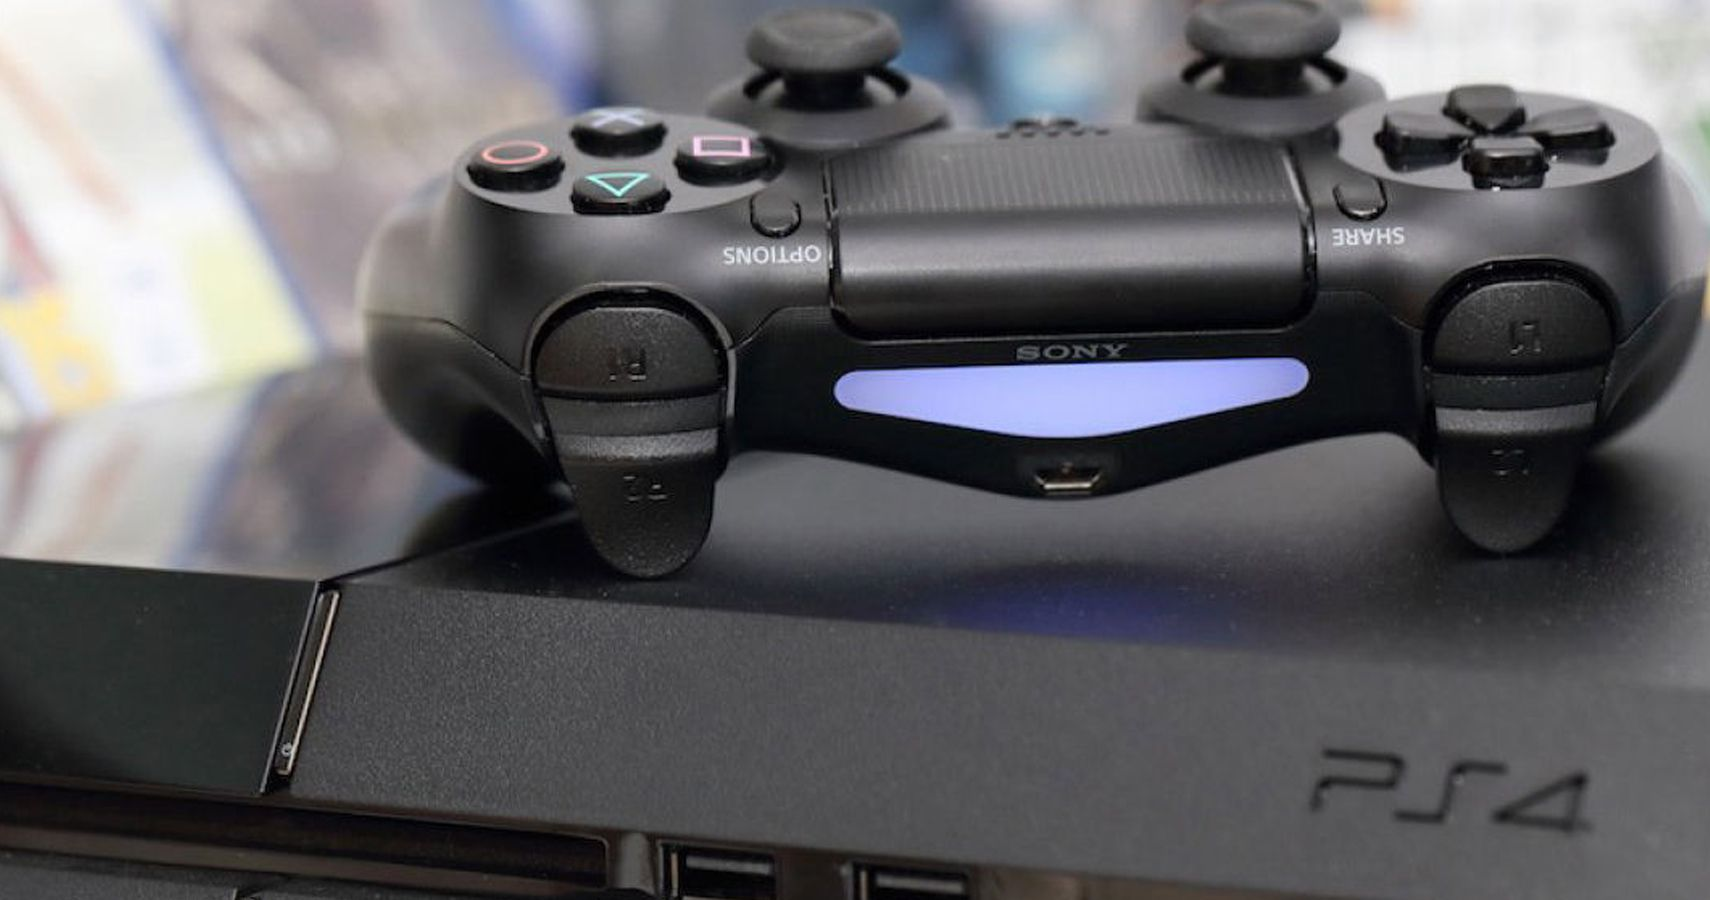 20 Glaring Problems With The PlayStation 4 That Gamers Completely Ignore